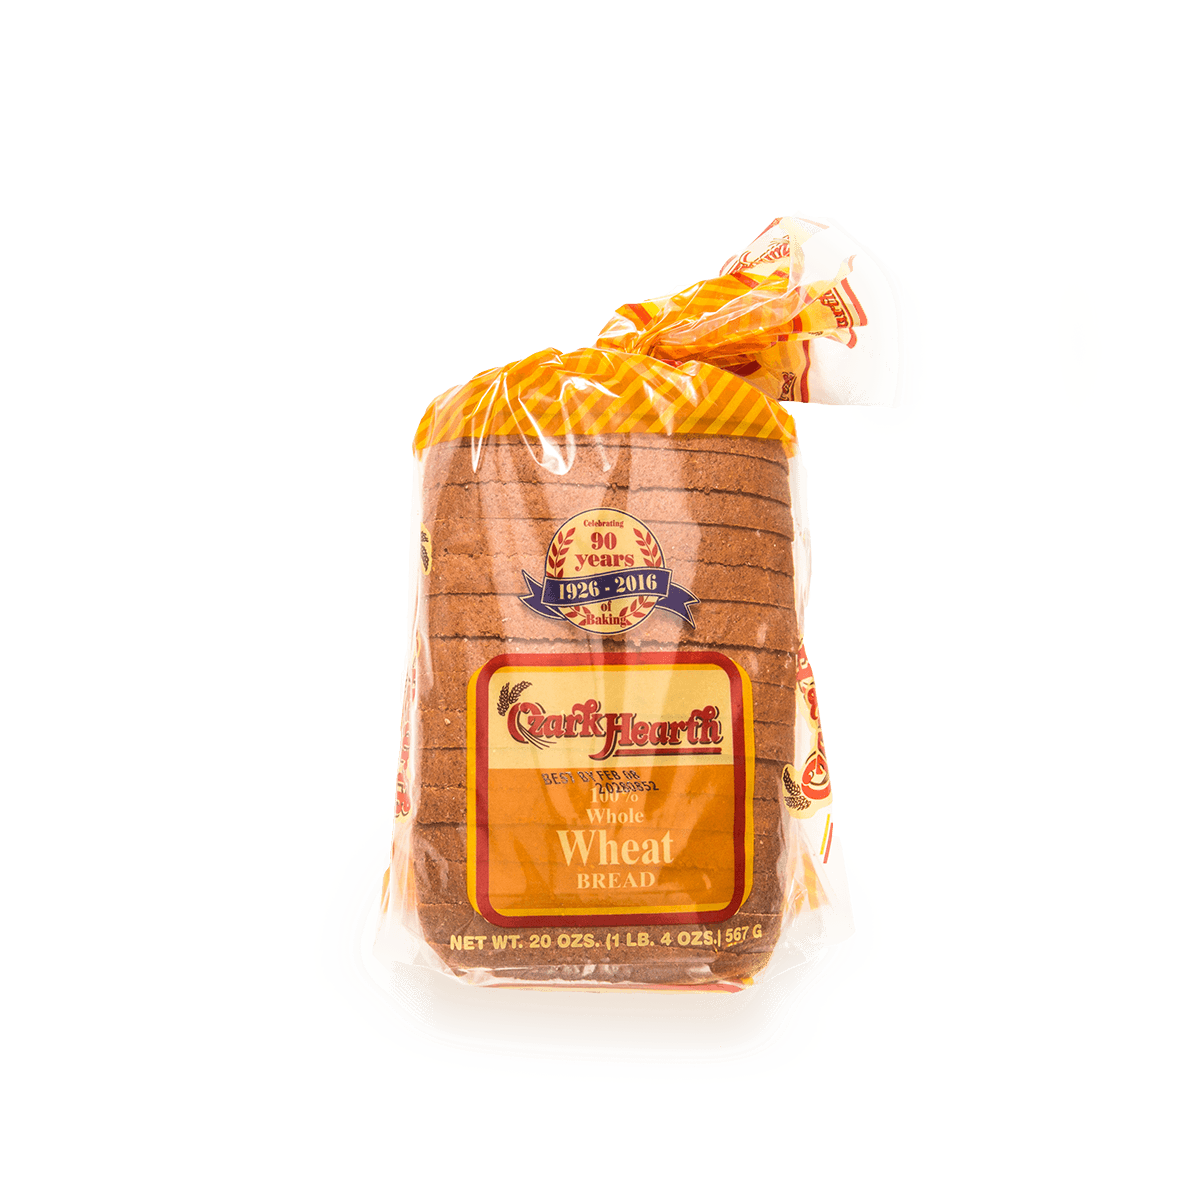 Ozark Hearth 100% Whole Wheat Bread